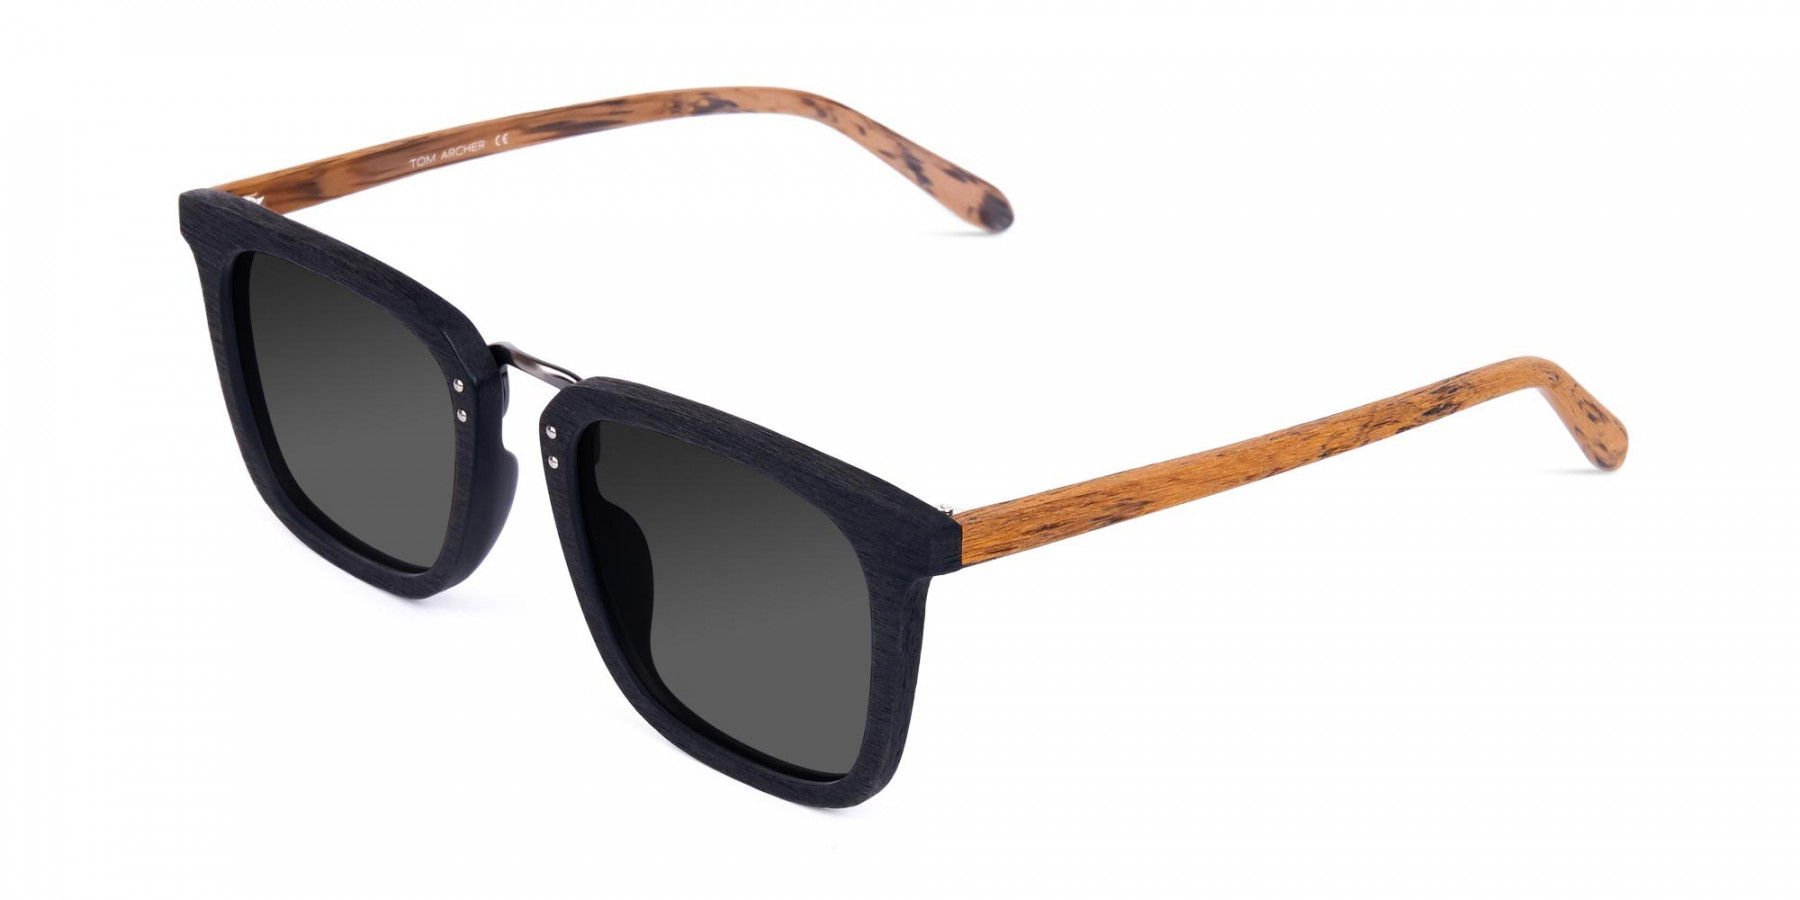 Wood-Black-Square-Sunglasses-with-Grey-Tint-3